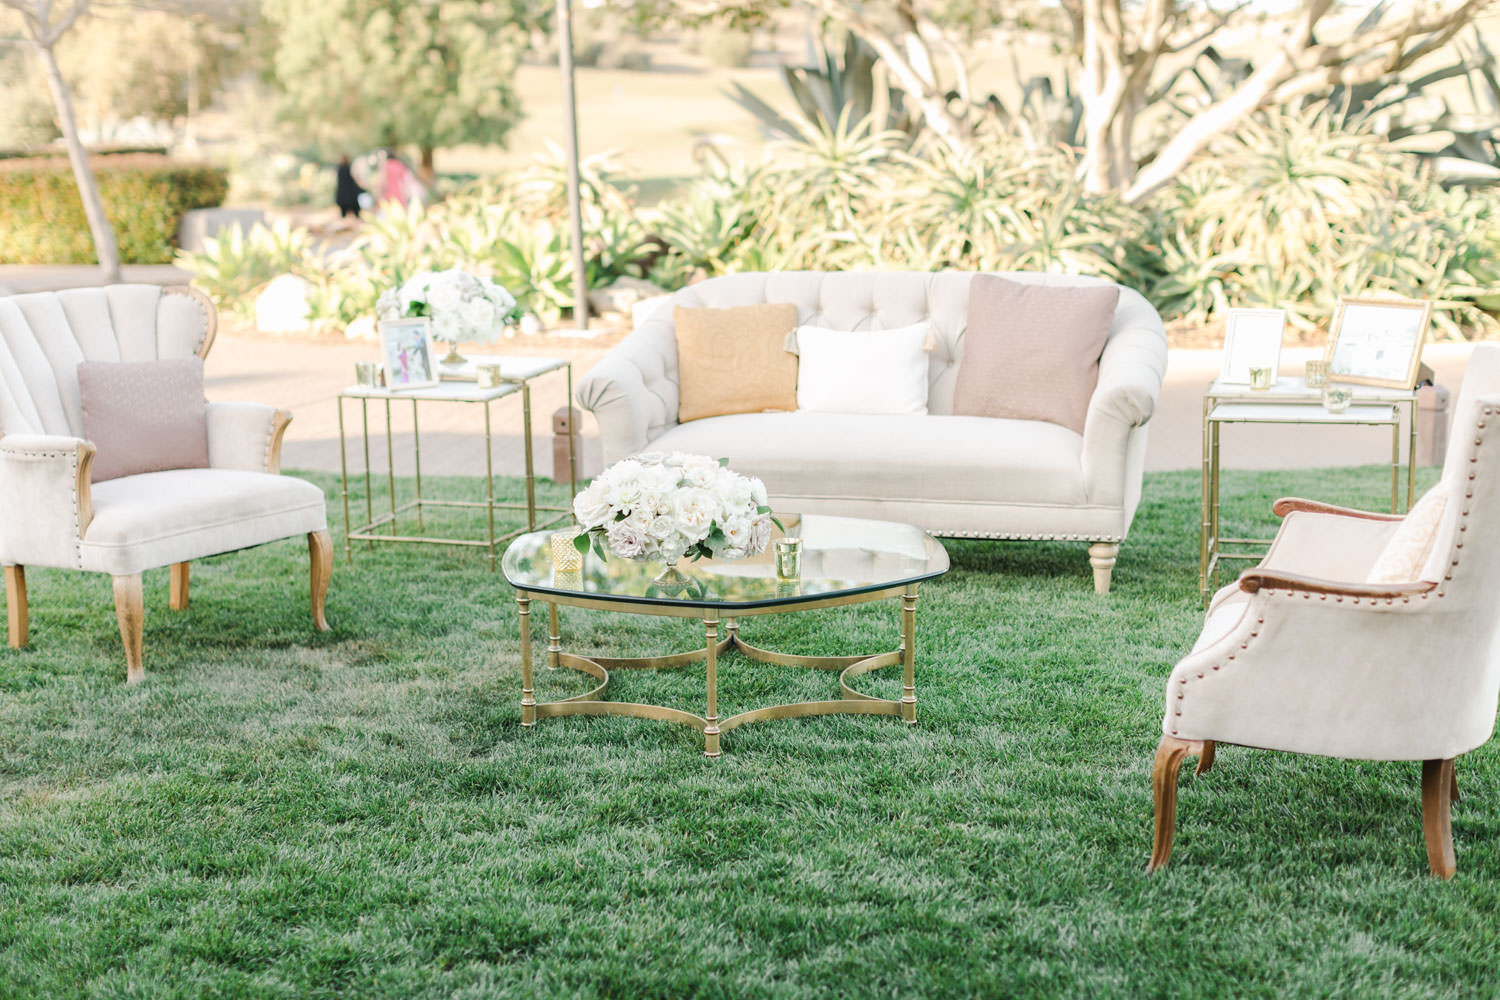 Wedding lounge with white sofa and armchairs with pillows and coffee tables, Cavin Elizabeth Photography